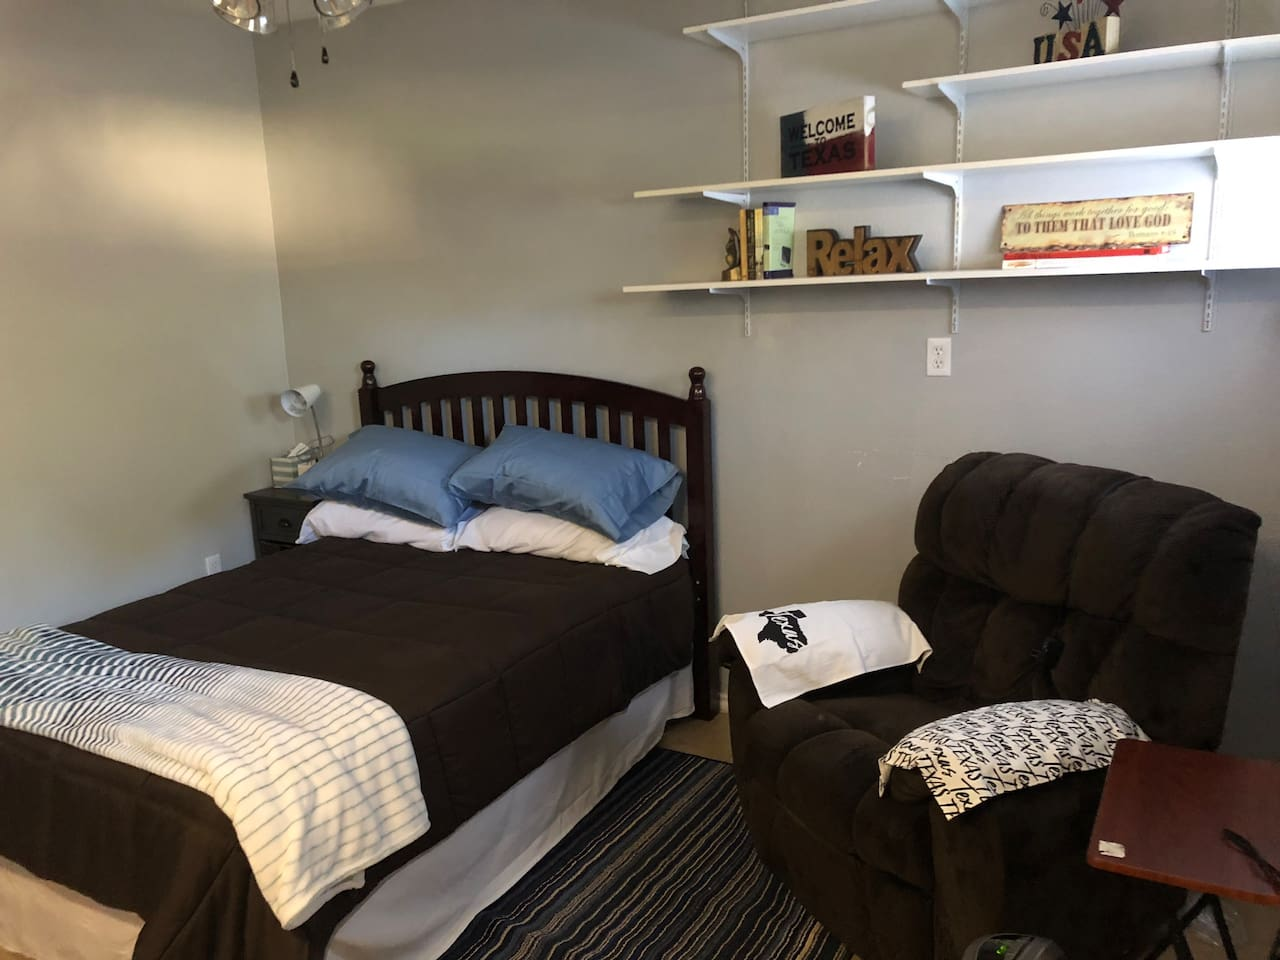 Queen size bed, recliner, nightstand, lamp, clock